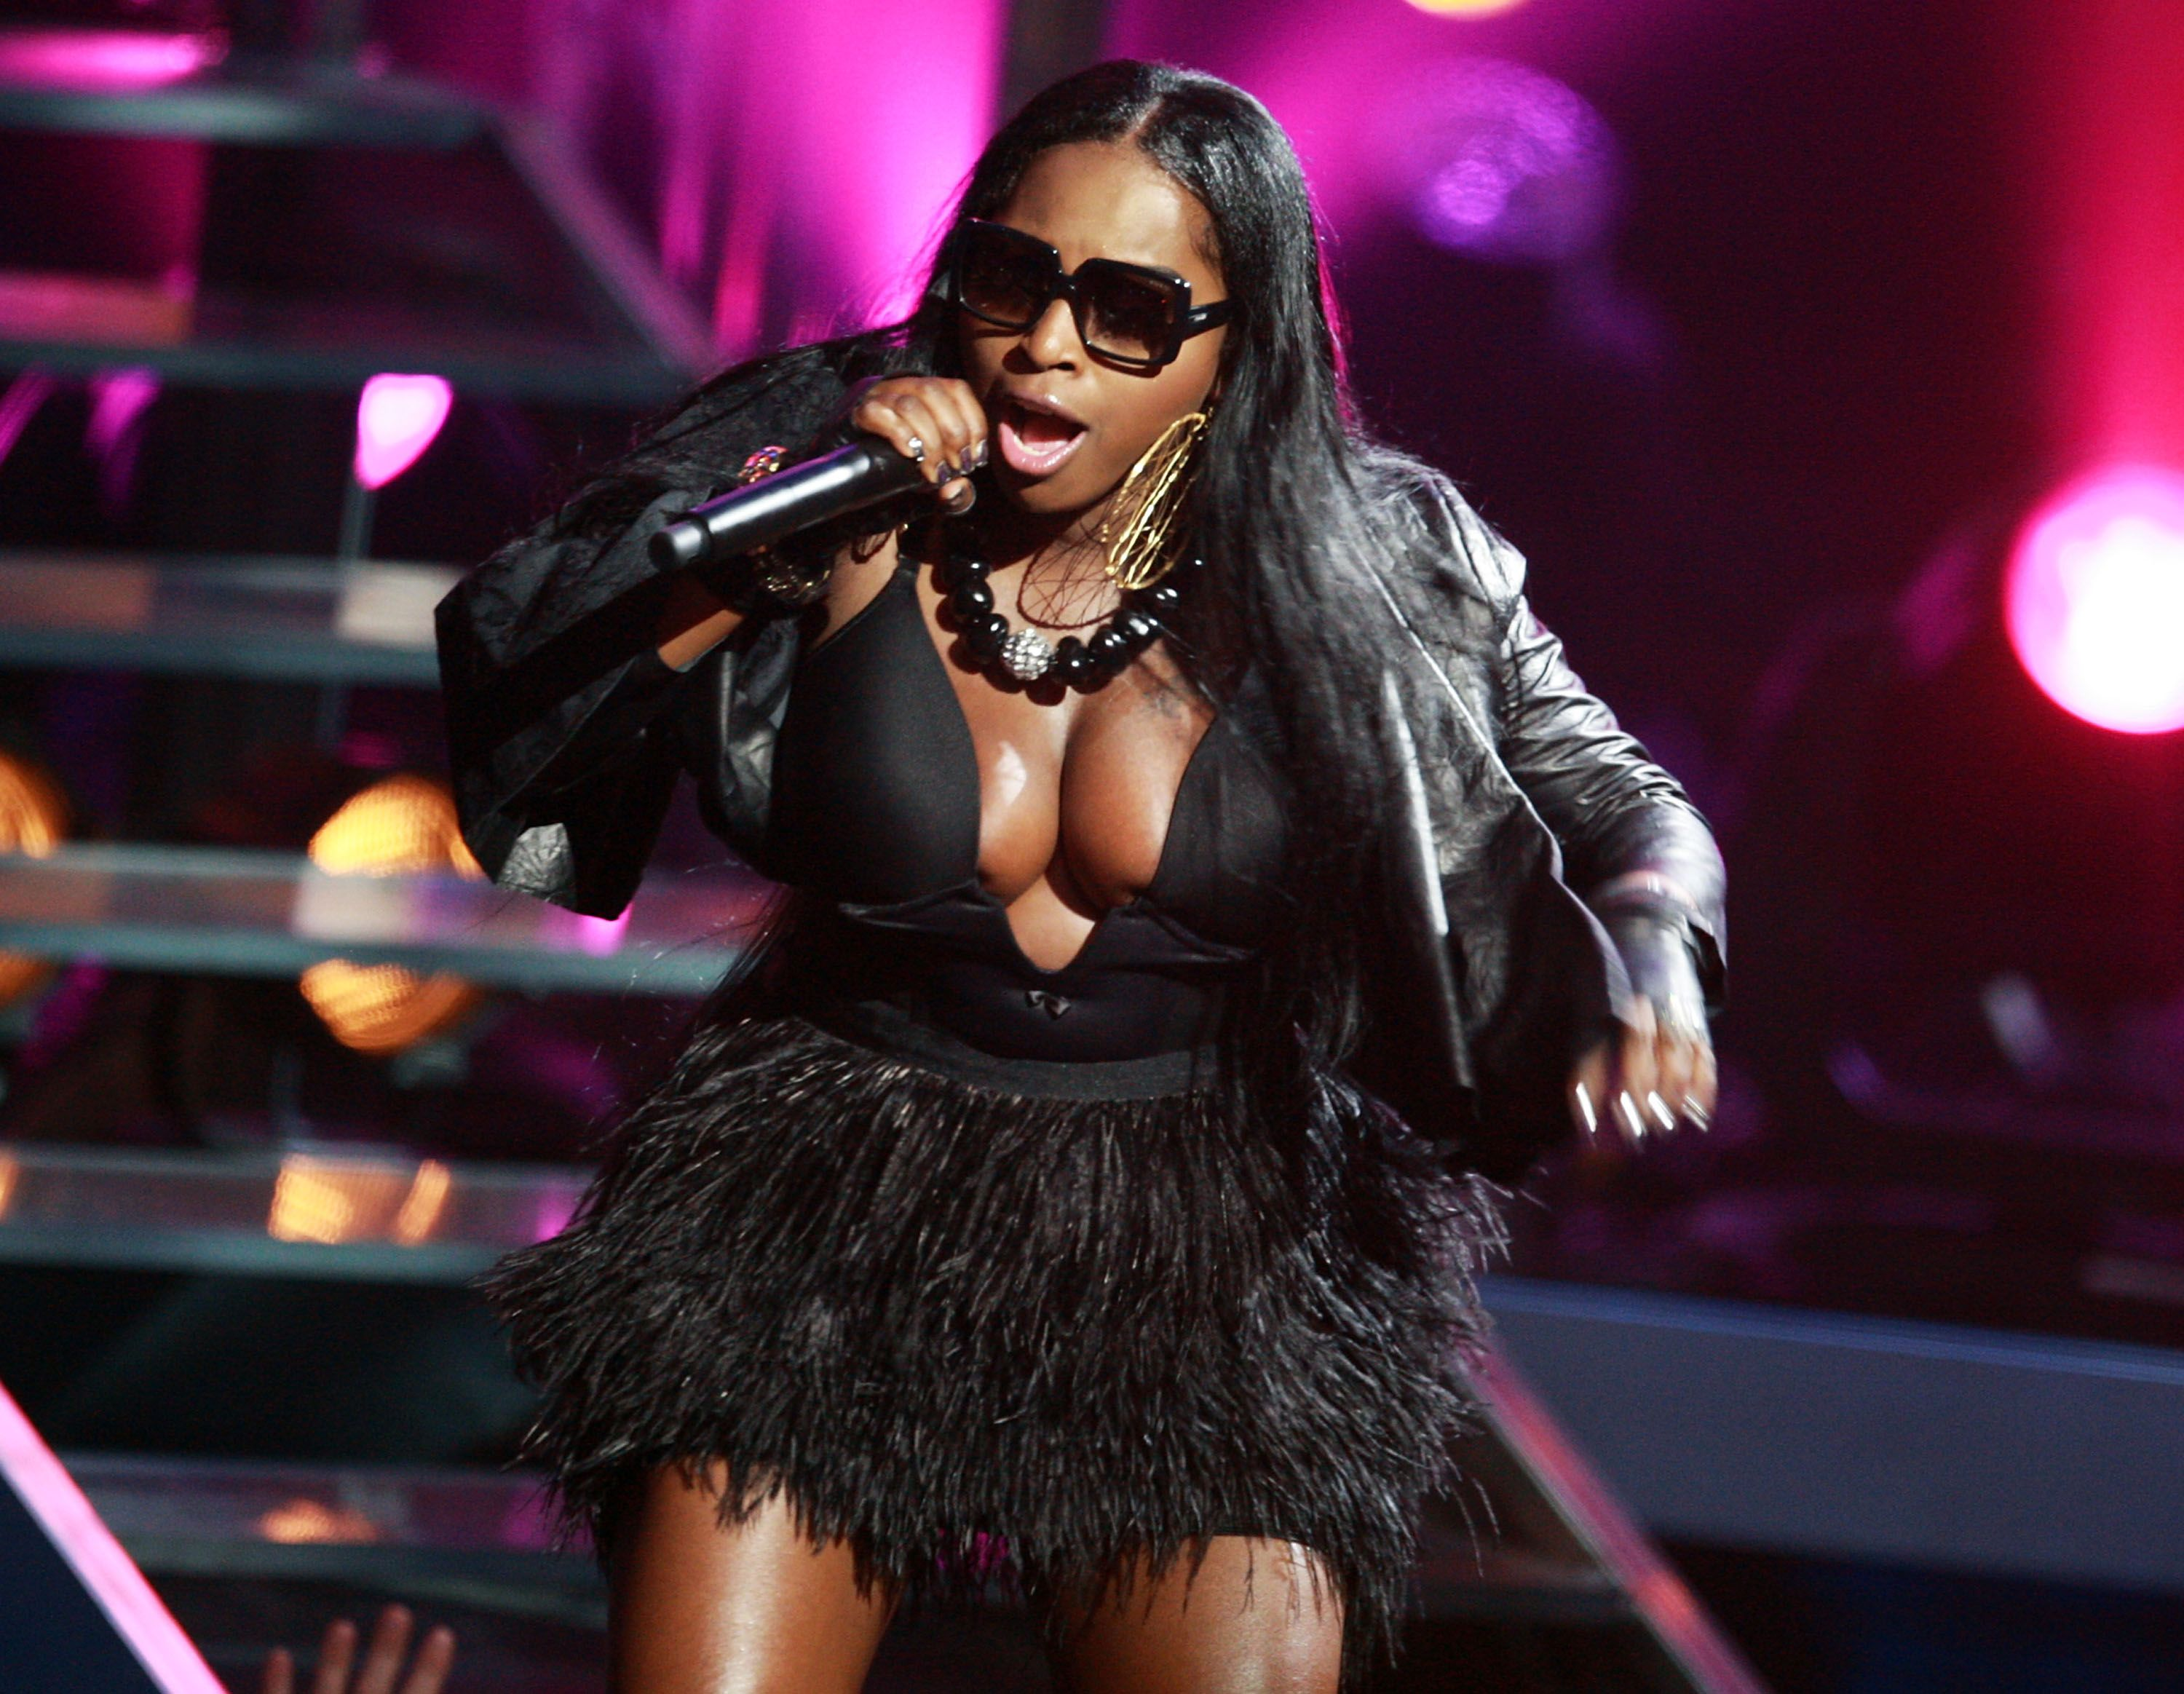 Foxy Brown onstage at the 2009 VH1 Hip Hop Honors in New York | Source: Getty Images